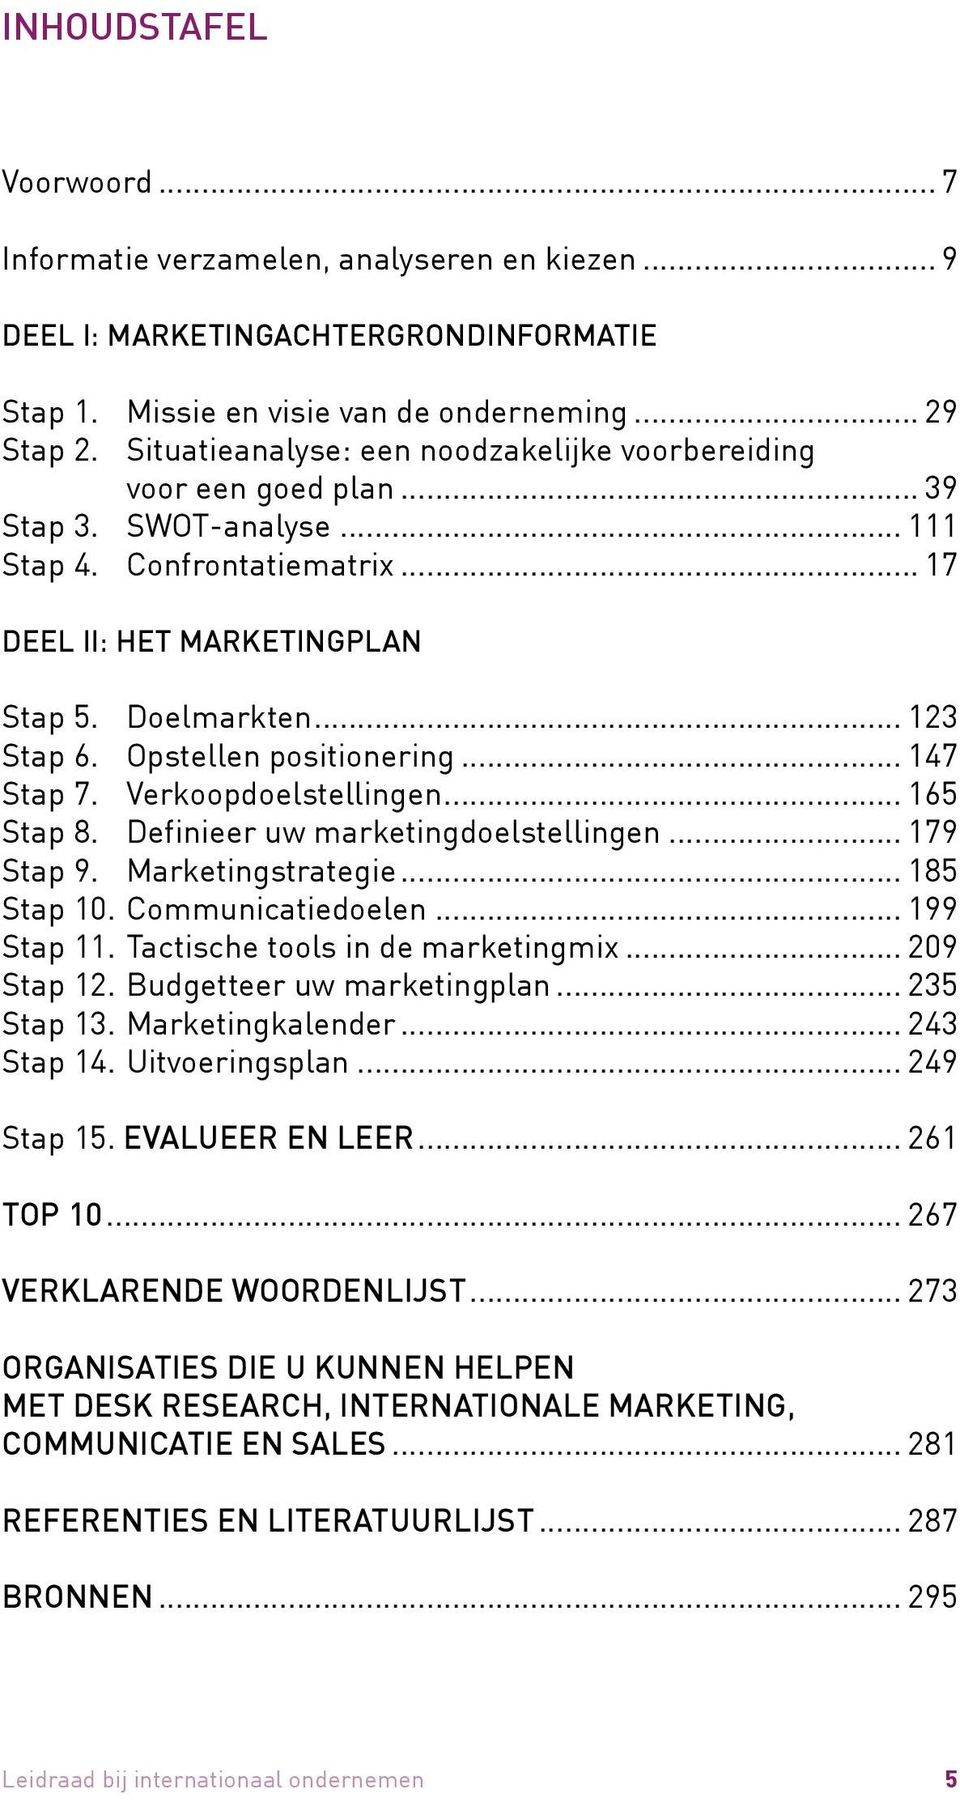 Opstellen positionering... 147 Stap 7. Verkoopdoelstellingen... 165 Stap 8. Definieer uw marketingdoelstellingen... 179 Stap 9. Marketingstrategie... 185 Stap 10. Communicatiedoelen... 199 Stap 11.